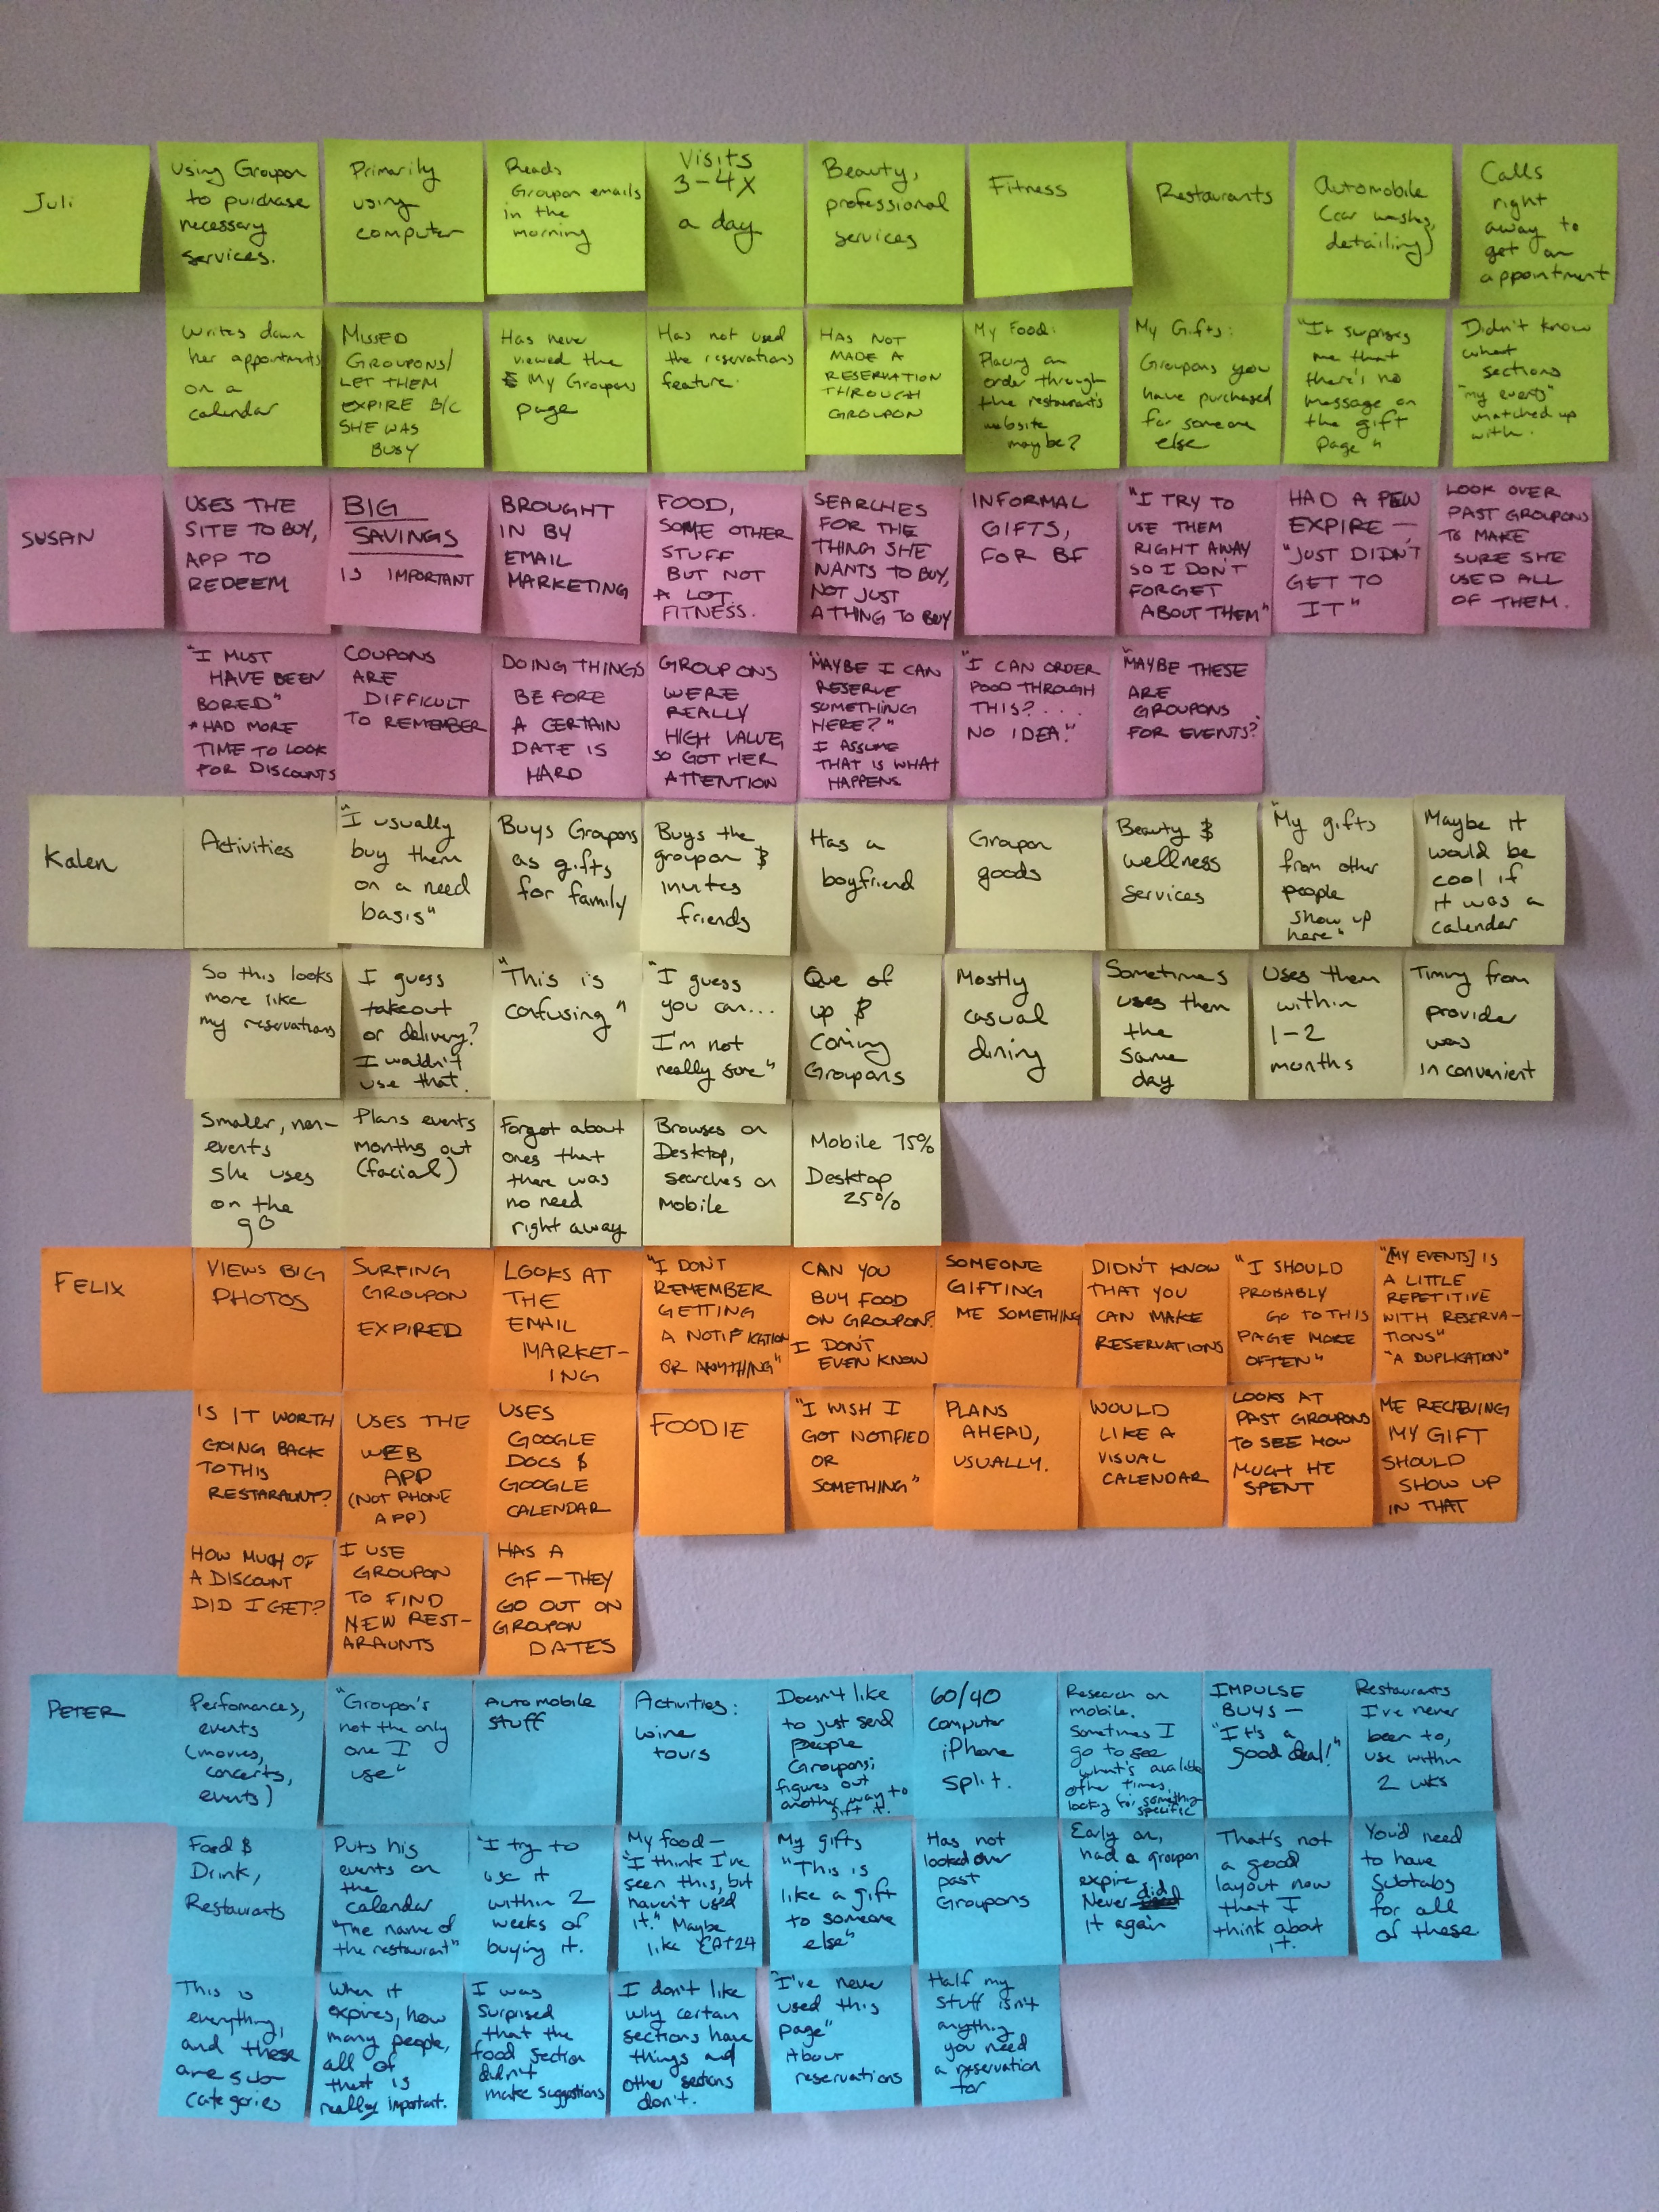 User notes pre-dump and sort. Each color indicates a distinct user, each note a distinct thought, behavior, or challenge.